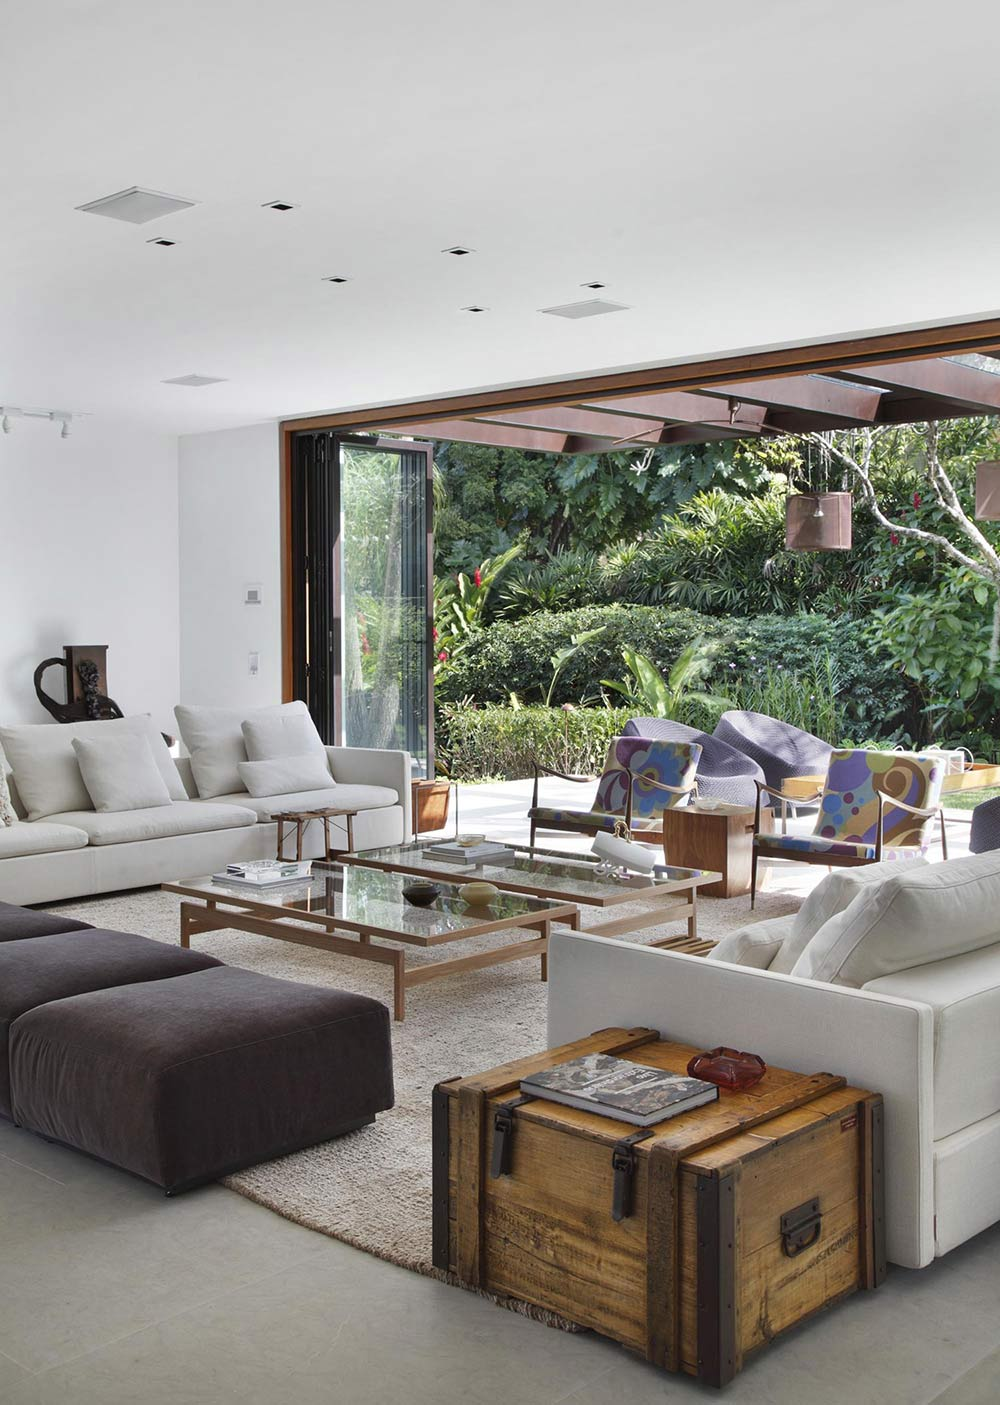 Coffee Table, Sofas, Colonial Style House Renovation in Rio de Janeiro